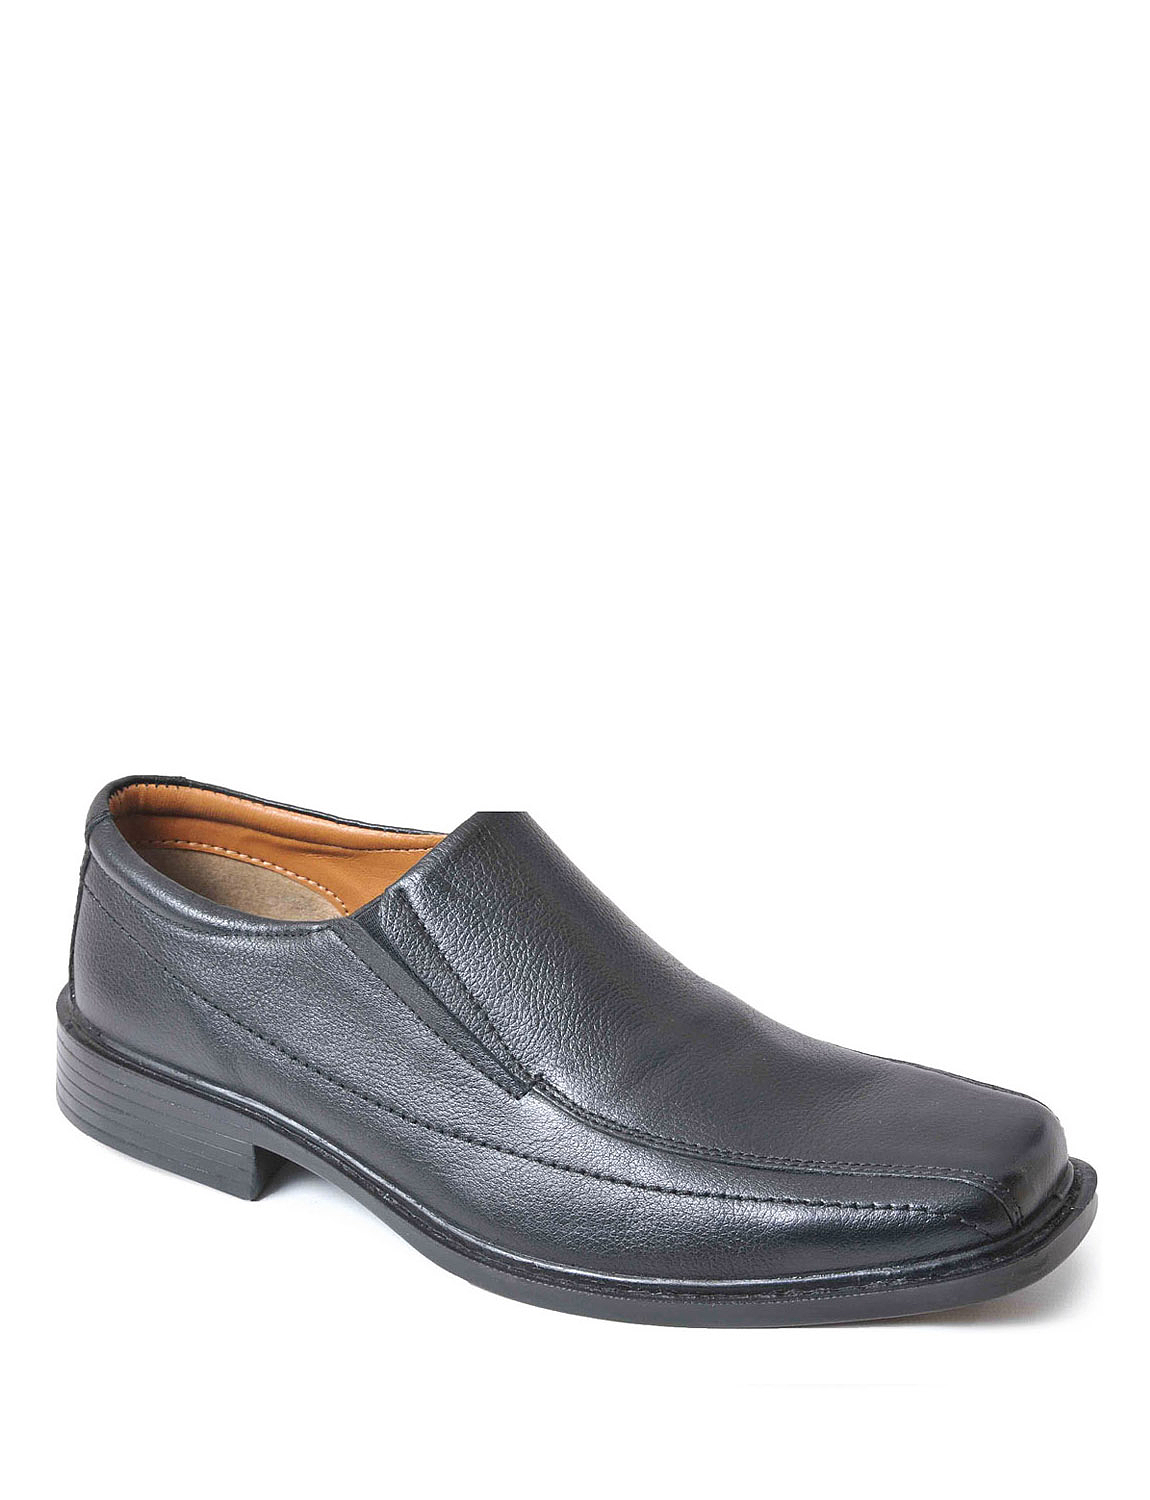 Wide Fit Leather Slip On Shoes - Black